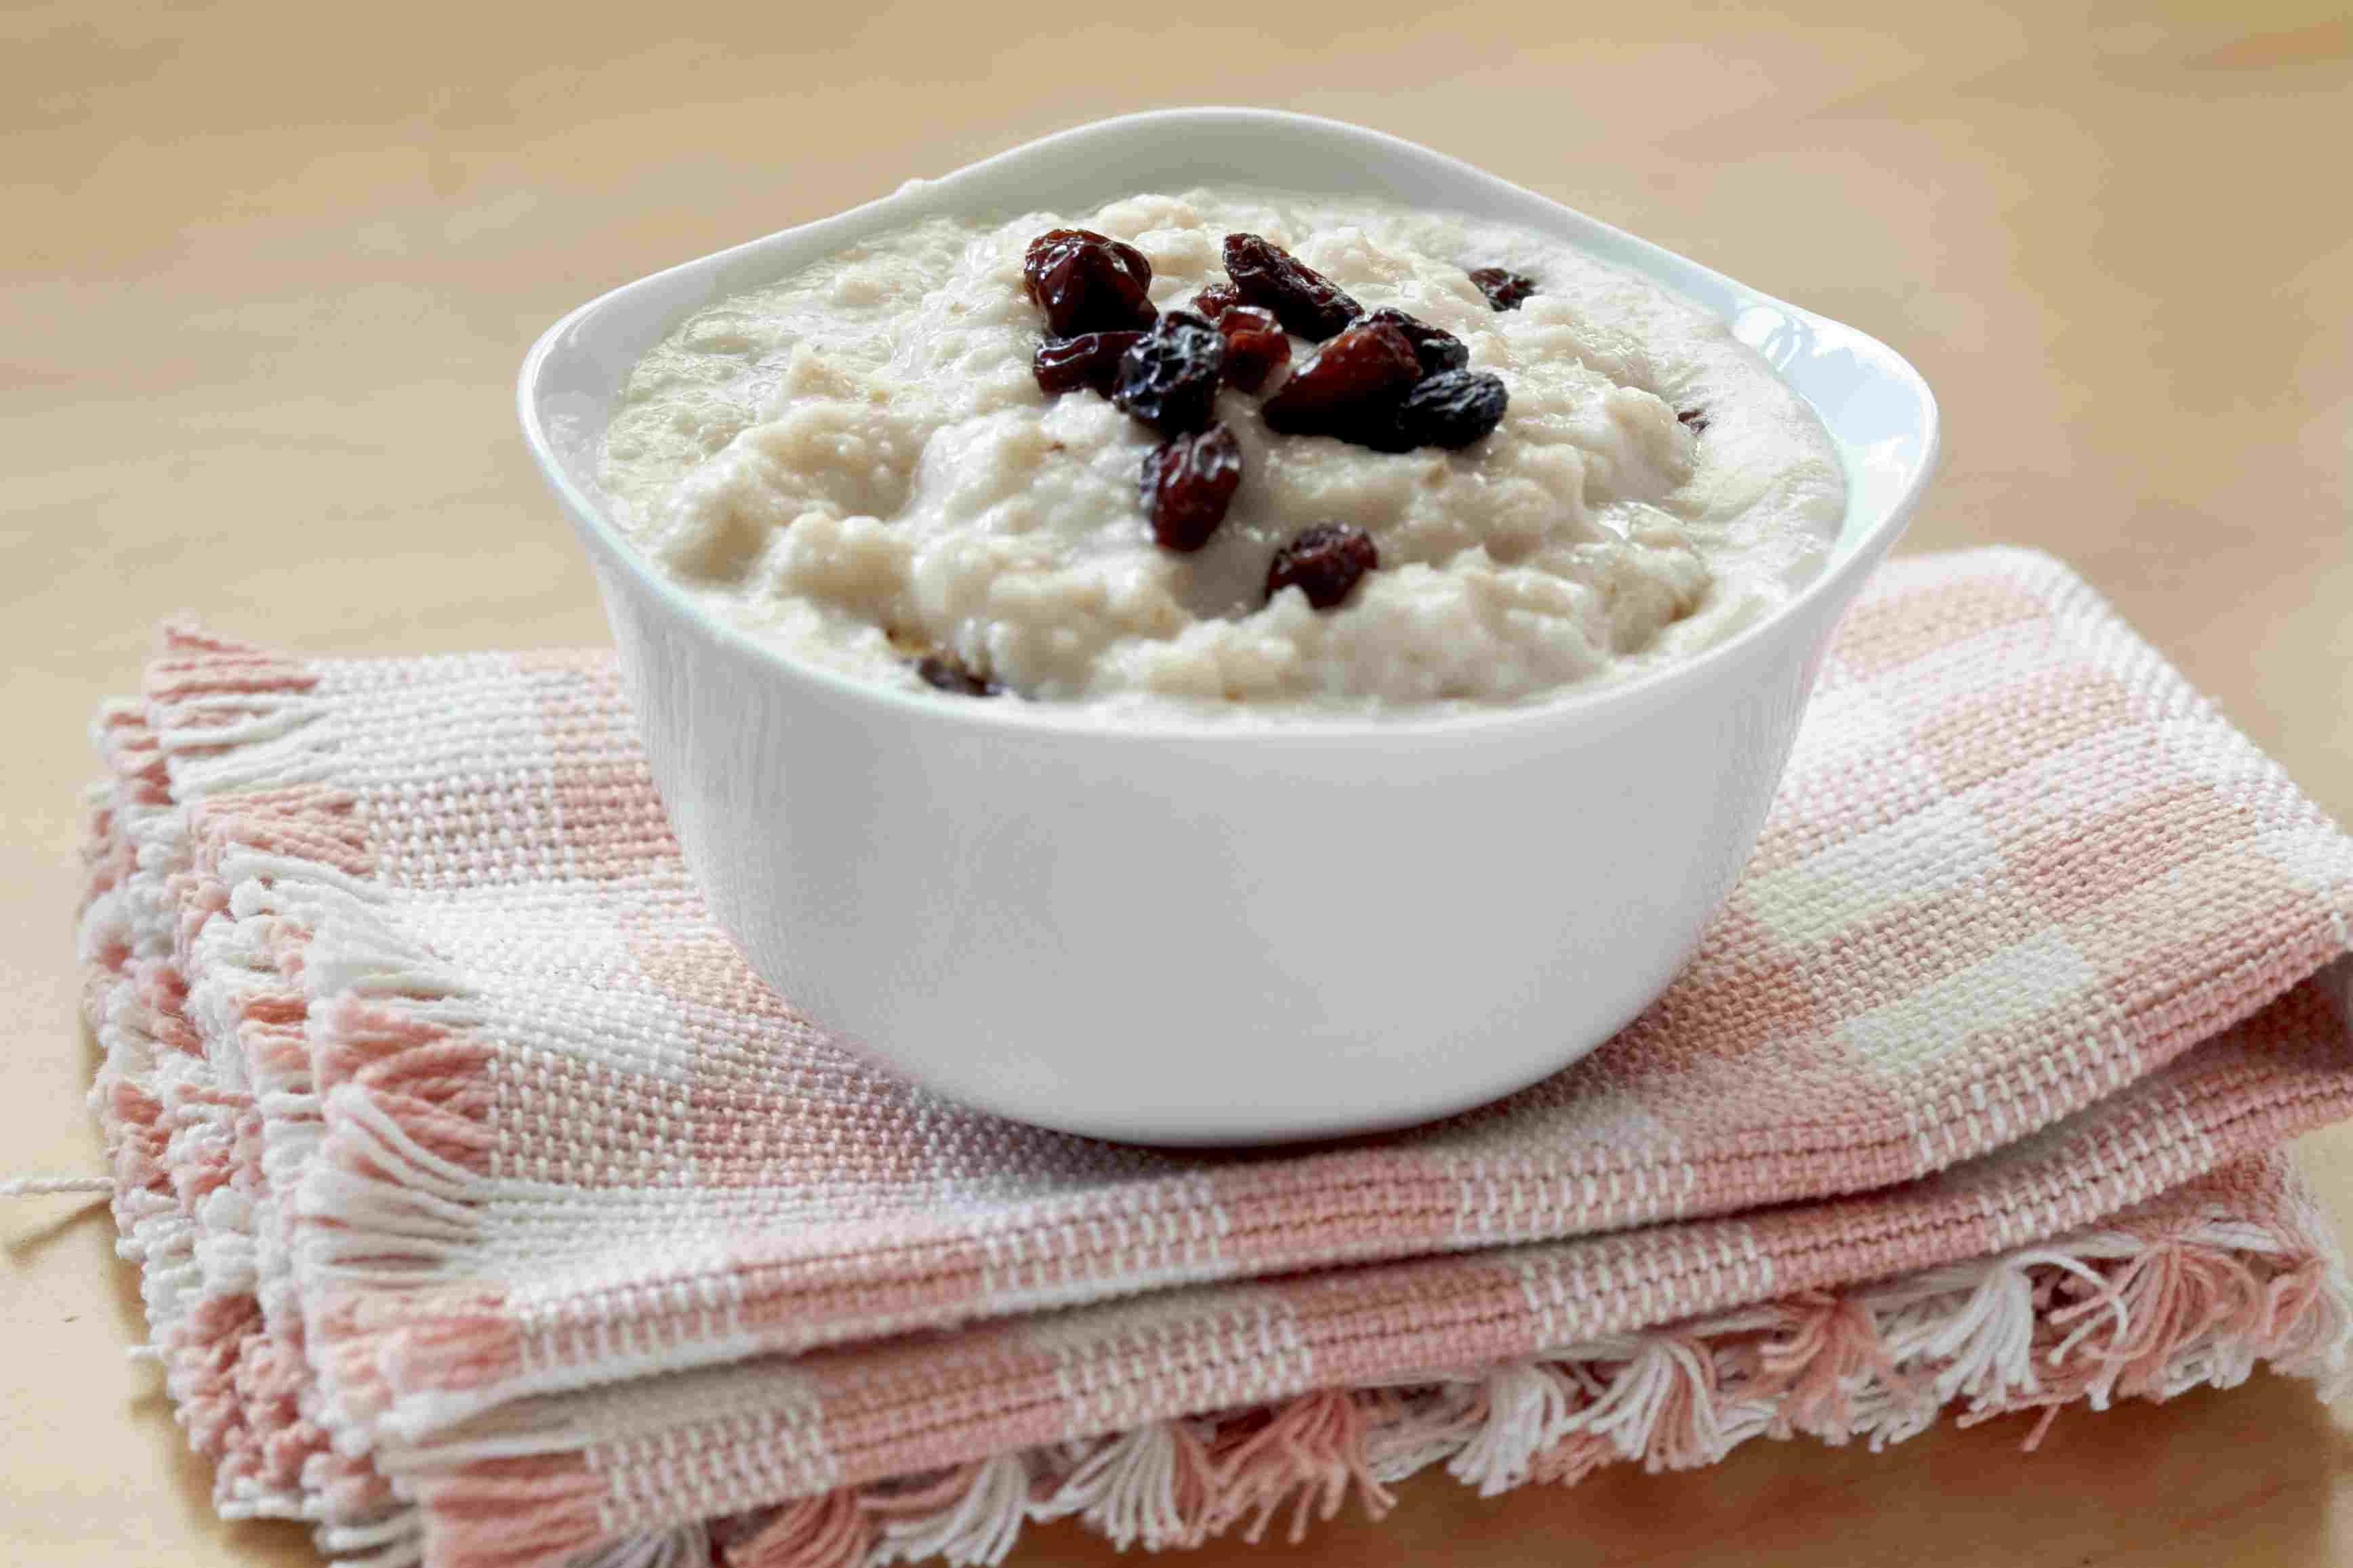 Bowl of oatmeal with raisins on top